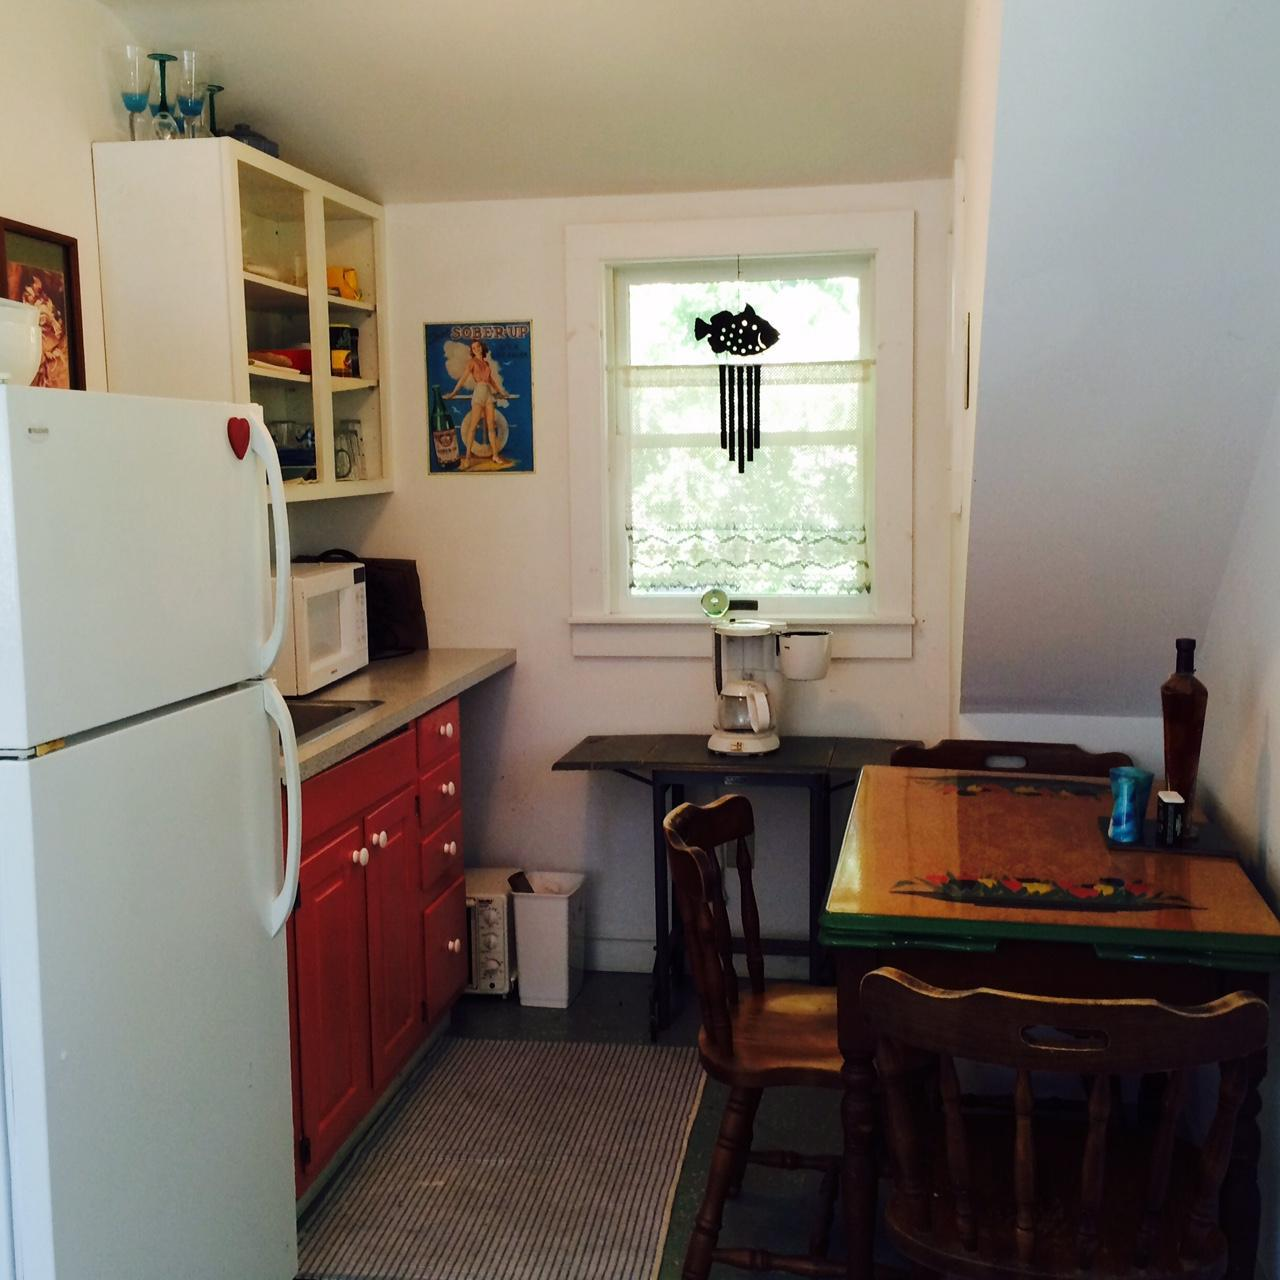 Brewster Vacation Rental Home In Cape Cod MA 02631, 5/10